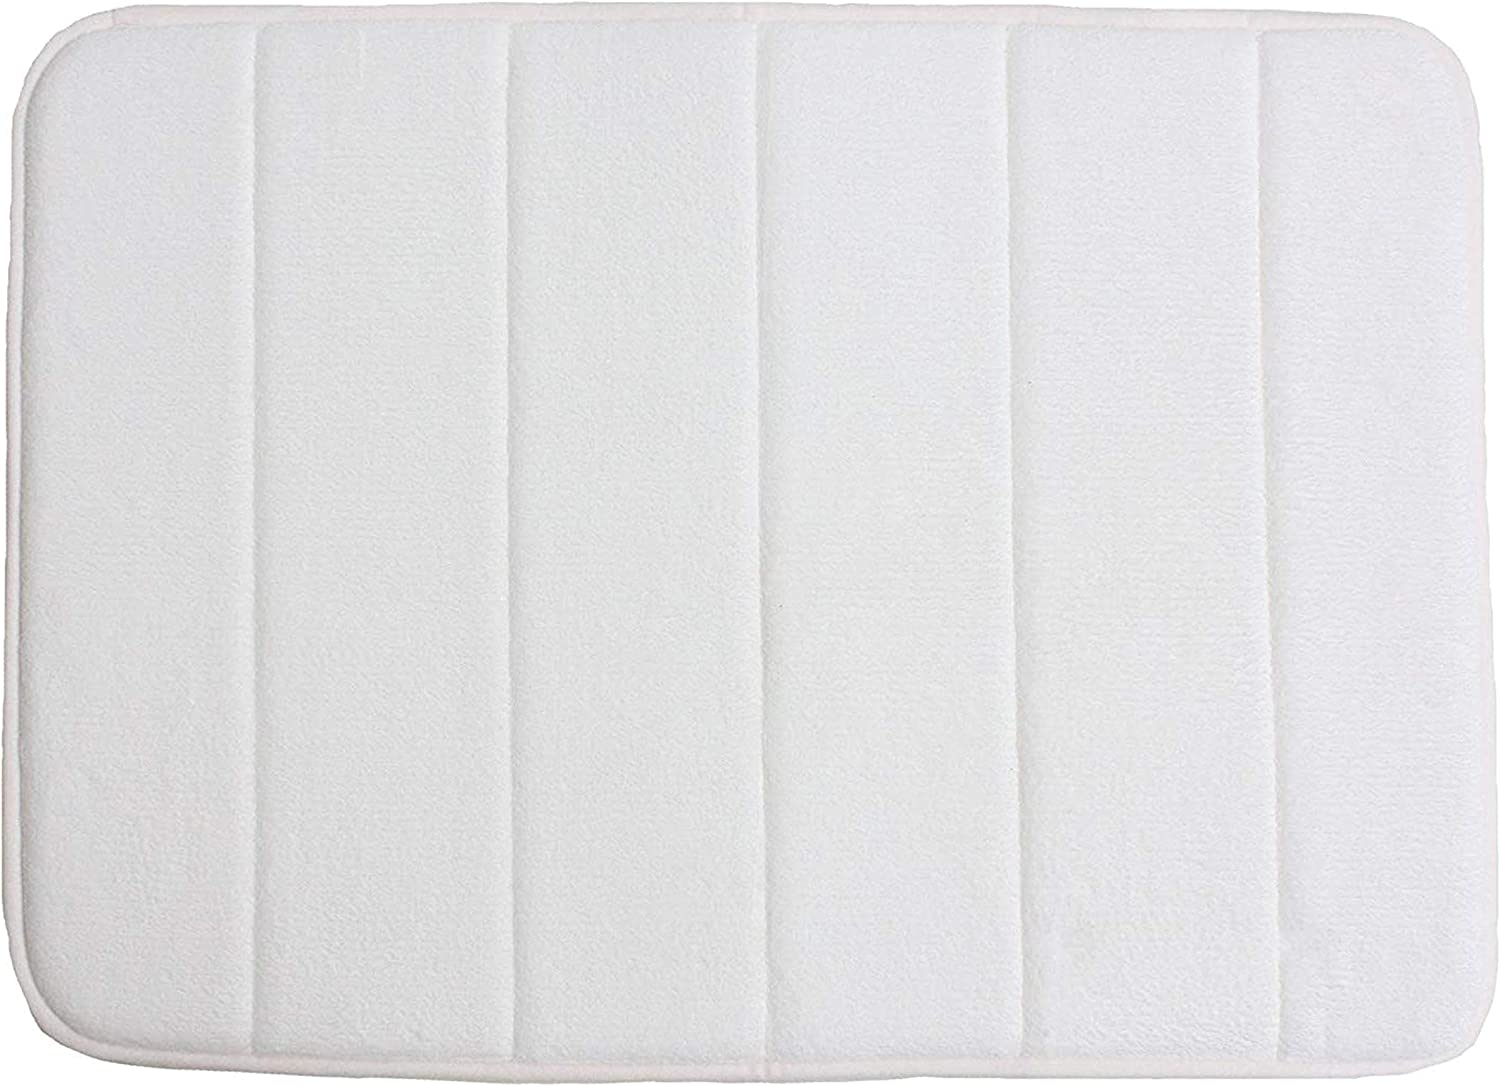 "Memory Foam Bath Mat Non Slip Ultra Soft and Absorbent 17x24"", Machine Washable Fast Dry for Shower, Vanity, Bath Tub, Sink, and Toilet-White"